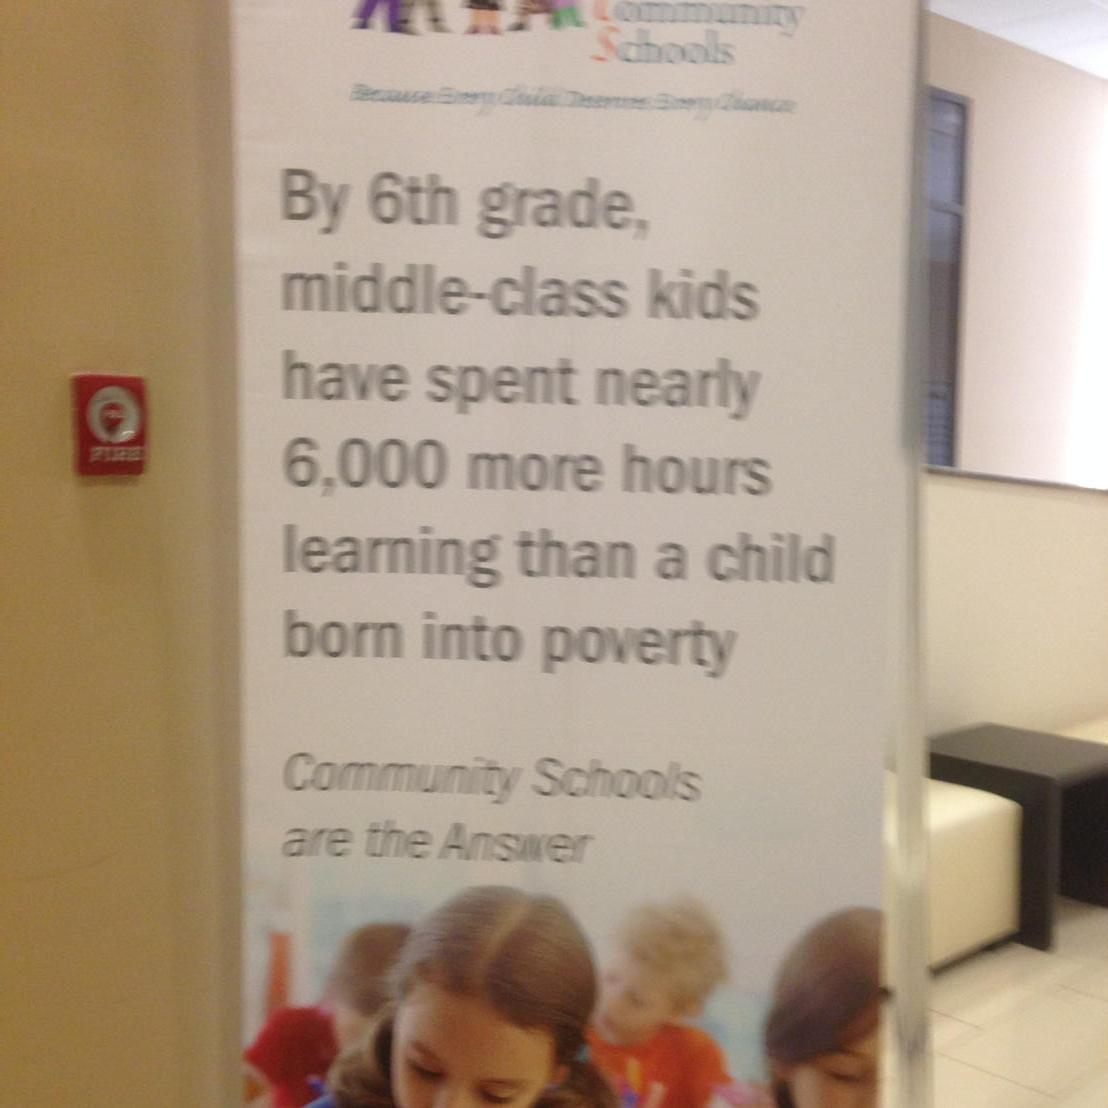 The reason we need to advocate #communityschools http://t.co/CZy9UKLlFl